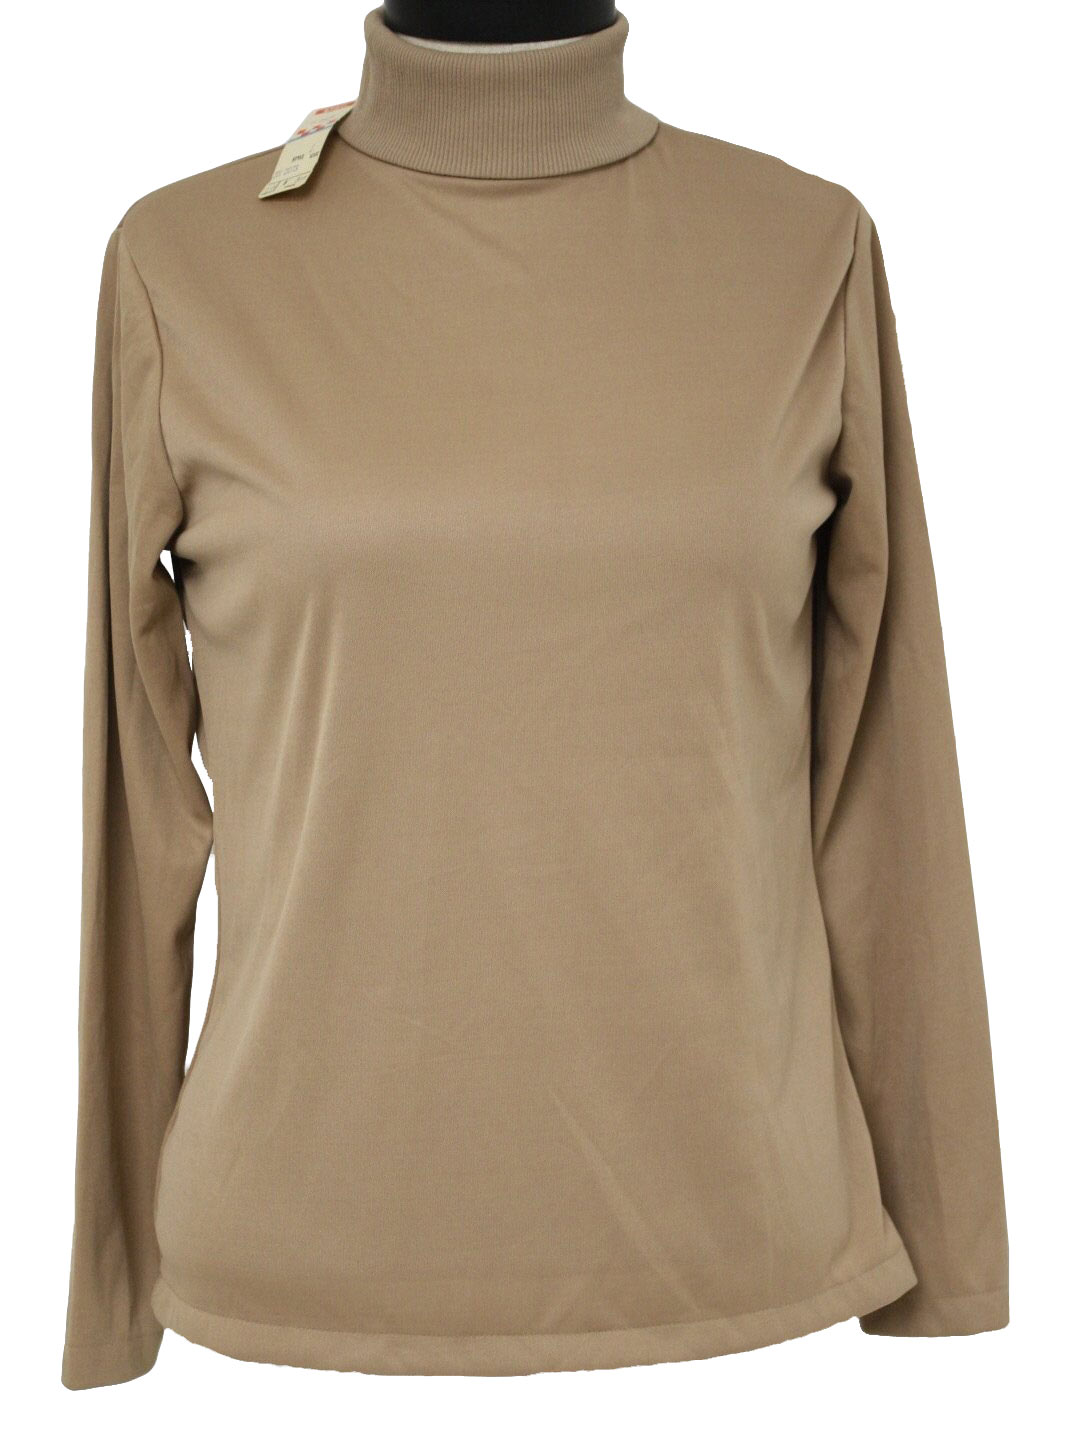 Mens Brown Turtleneck Shirts